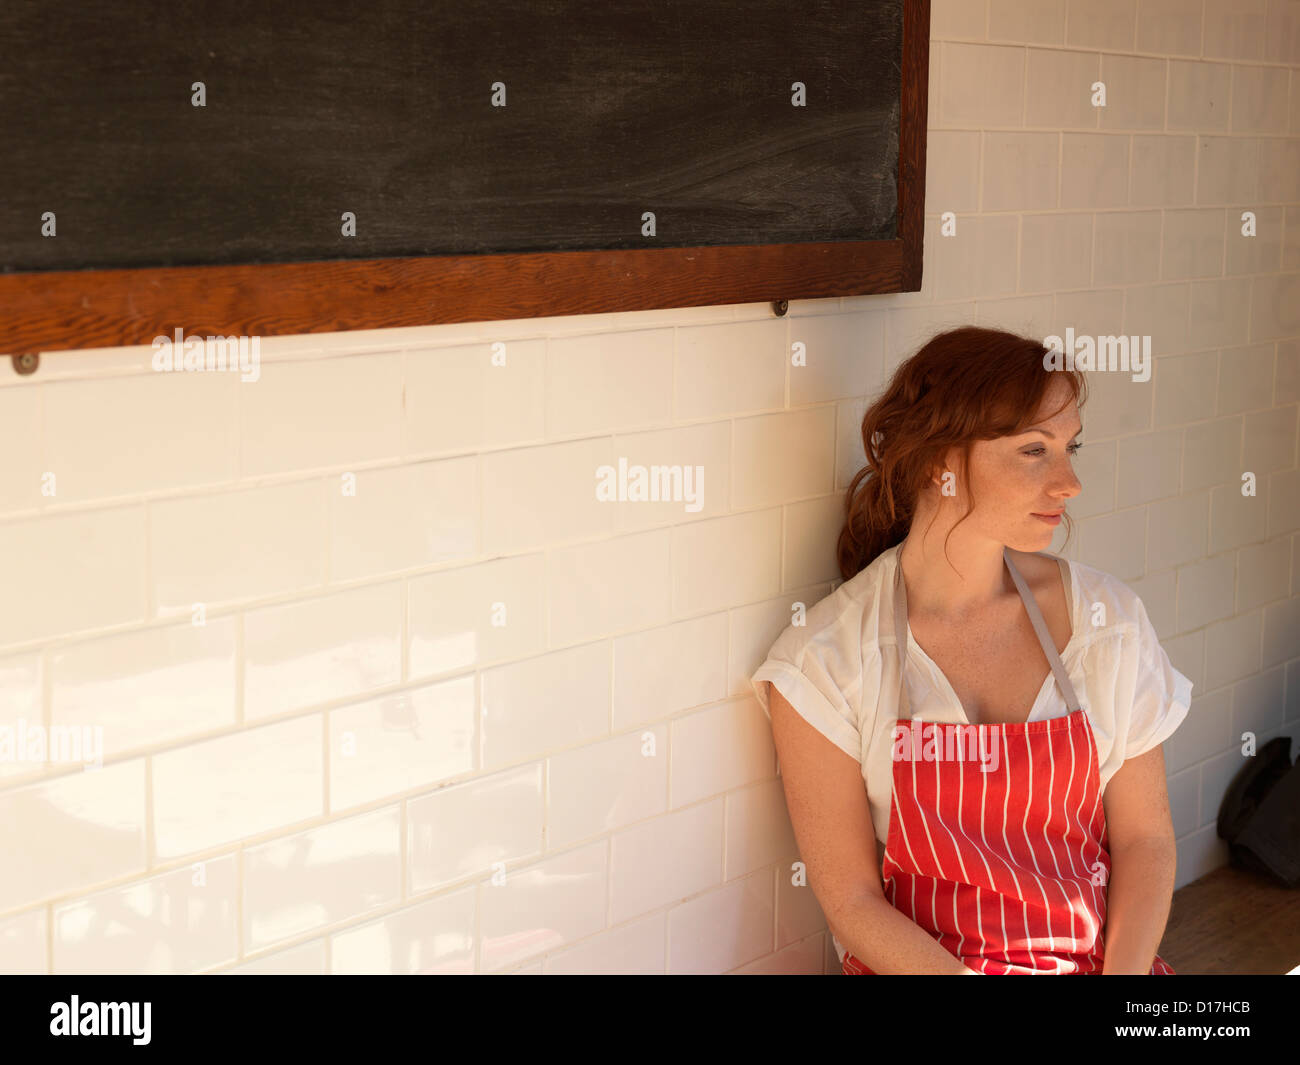 Woman in apron sitting on bench - Stock Image